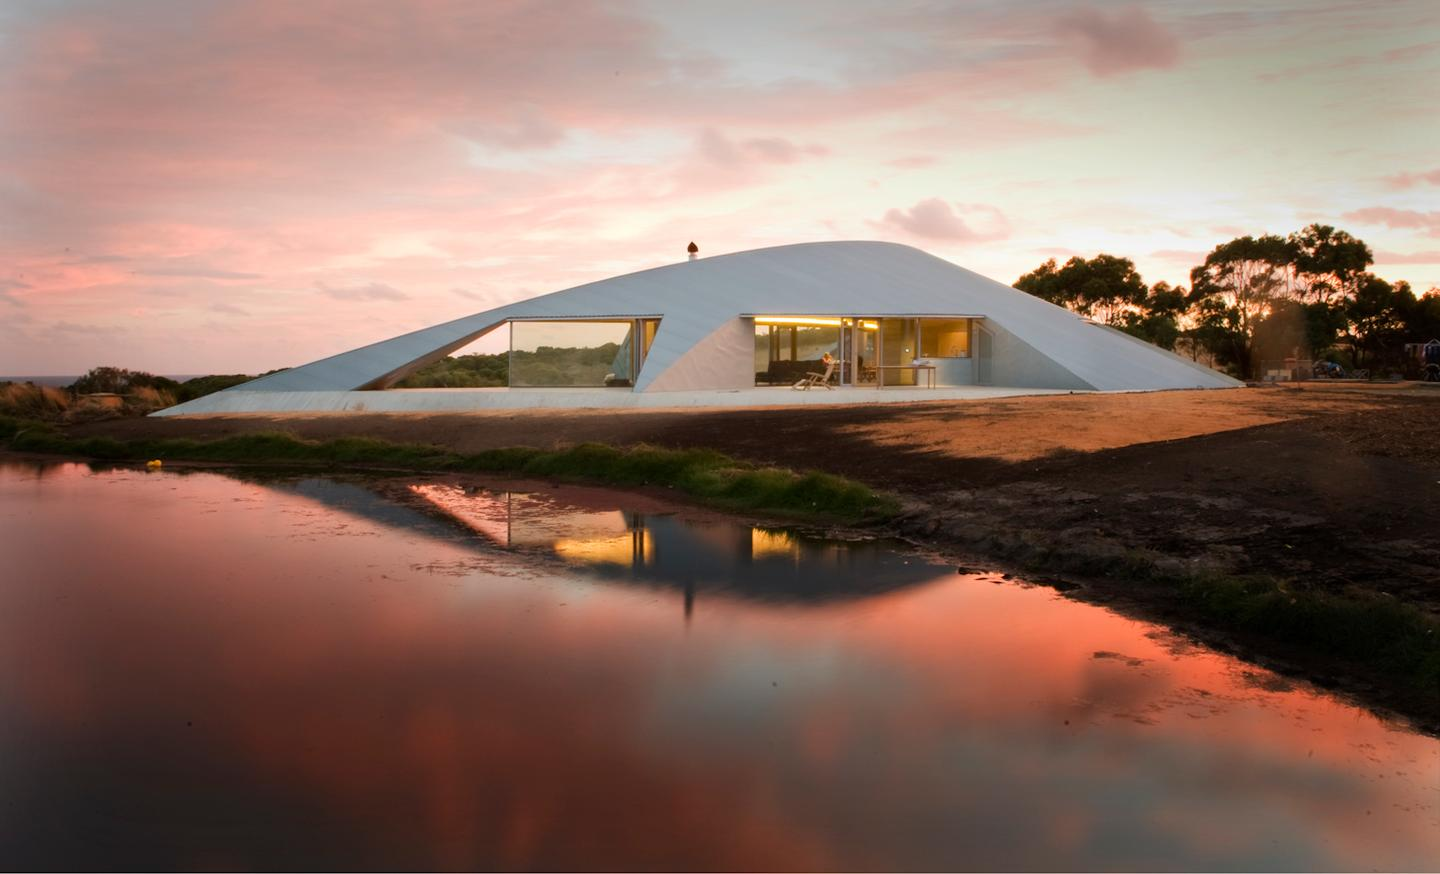 Crofthouse by Australian architect James Stockwell was recently awarded the Alan and Beth Coldicutt Award for Sustainable Architecture